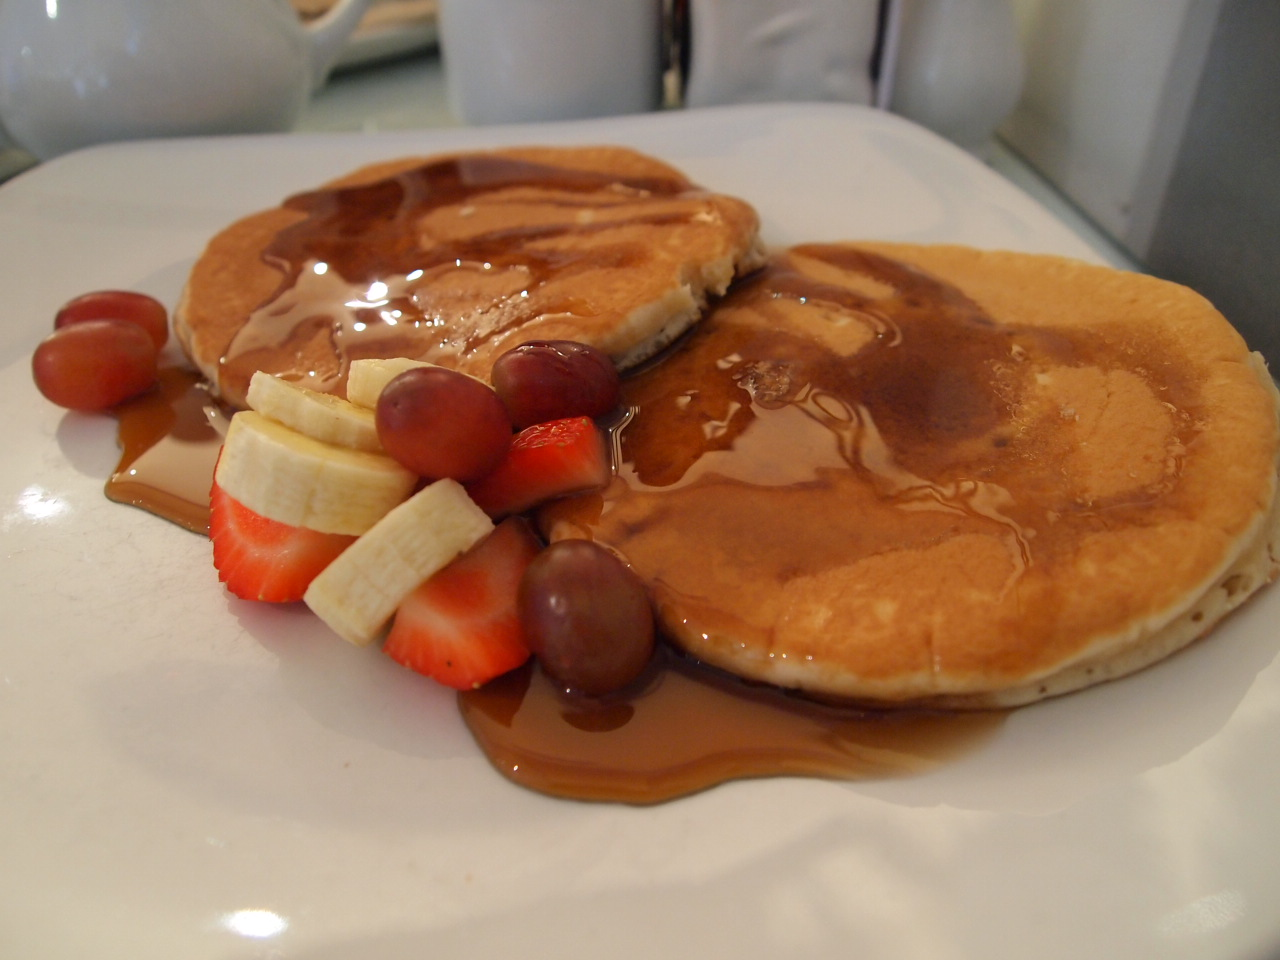 Pancakes and fruits | © The Integer Club/Flickr